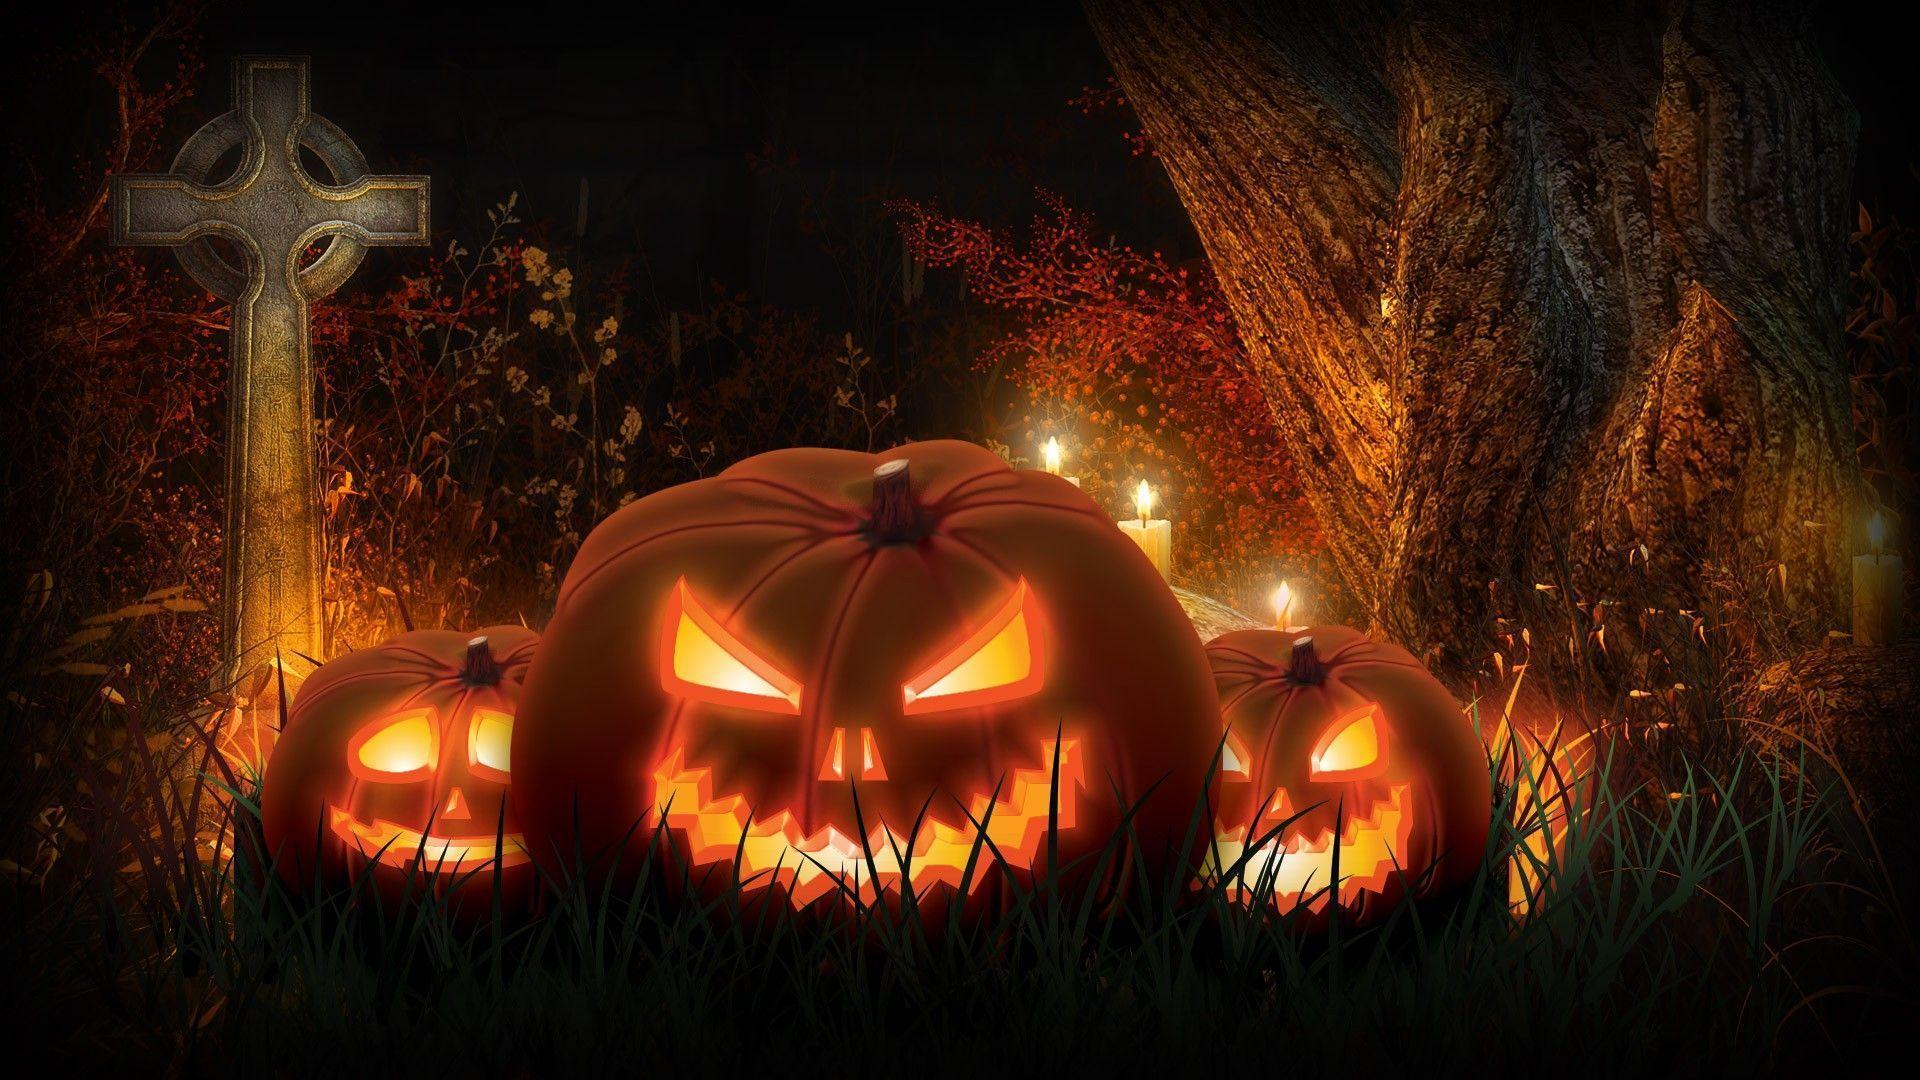 scary halloween pumpkin wallpaper 1080p toobjects